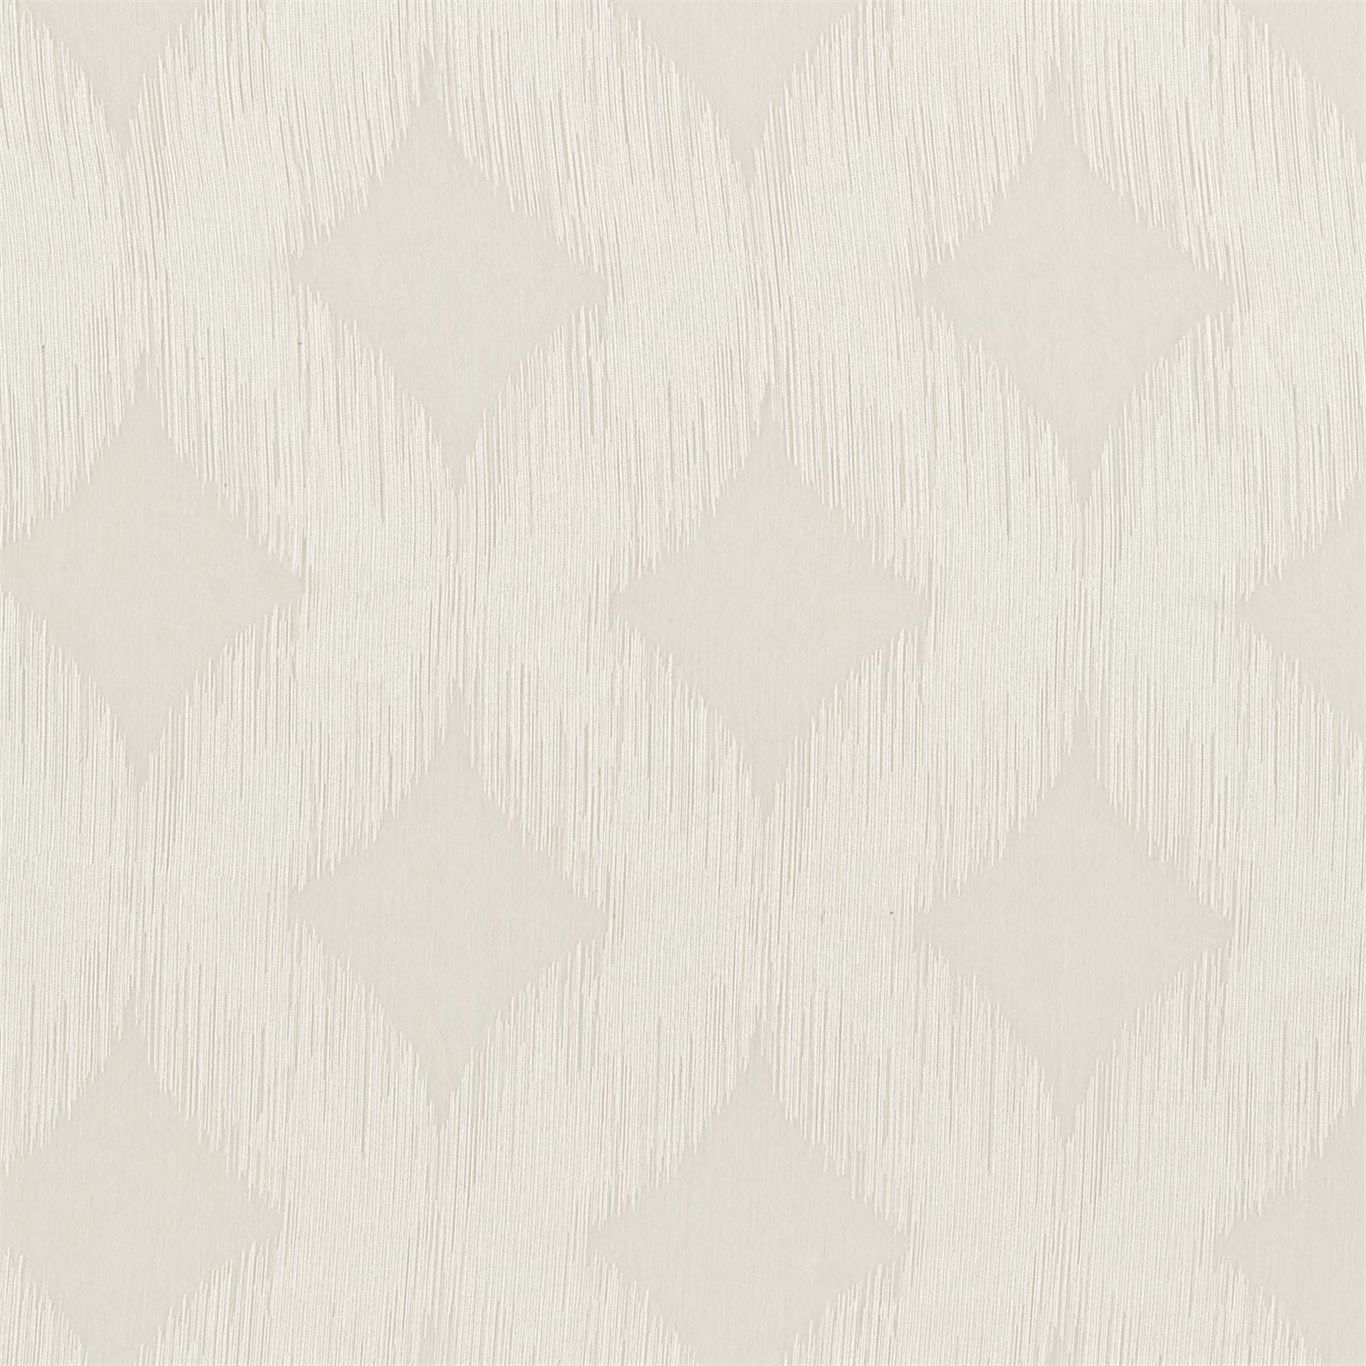 Products harlequin designer fabrics and wallpapers paradise - Products Harlequin Designer Fabrics And Wallpapers Arc Hmov130586 Momentum Sheers